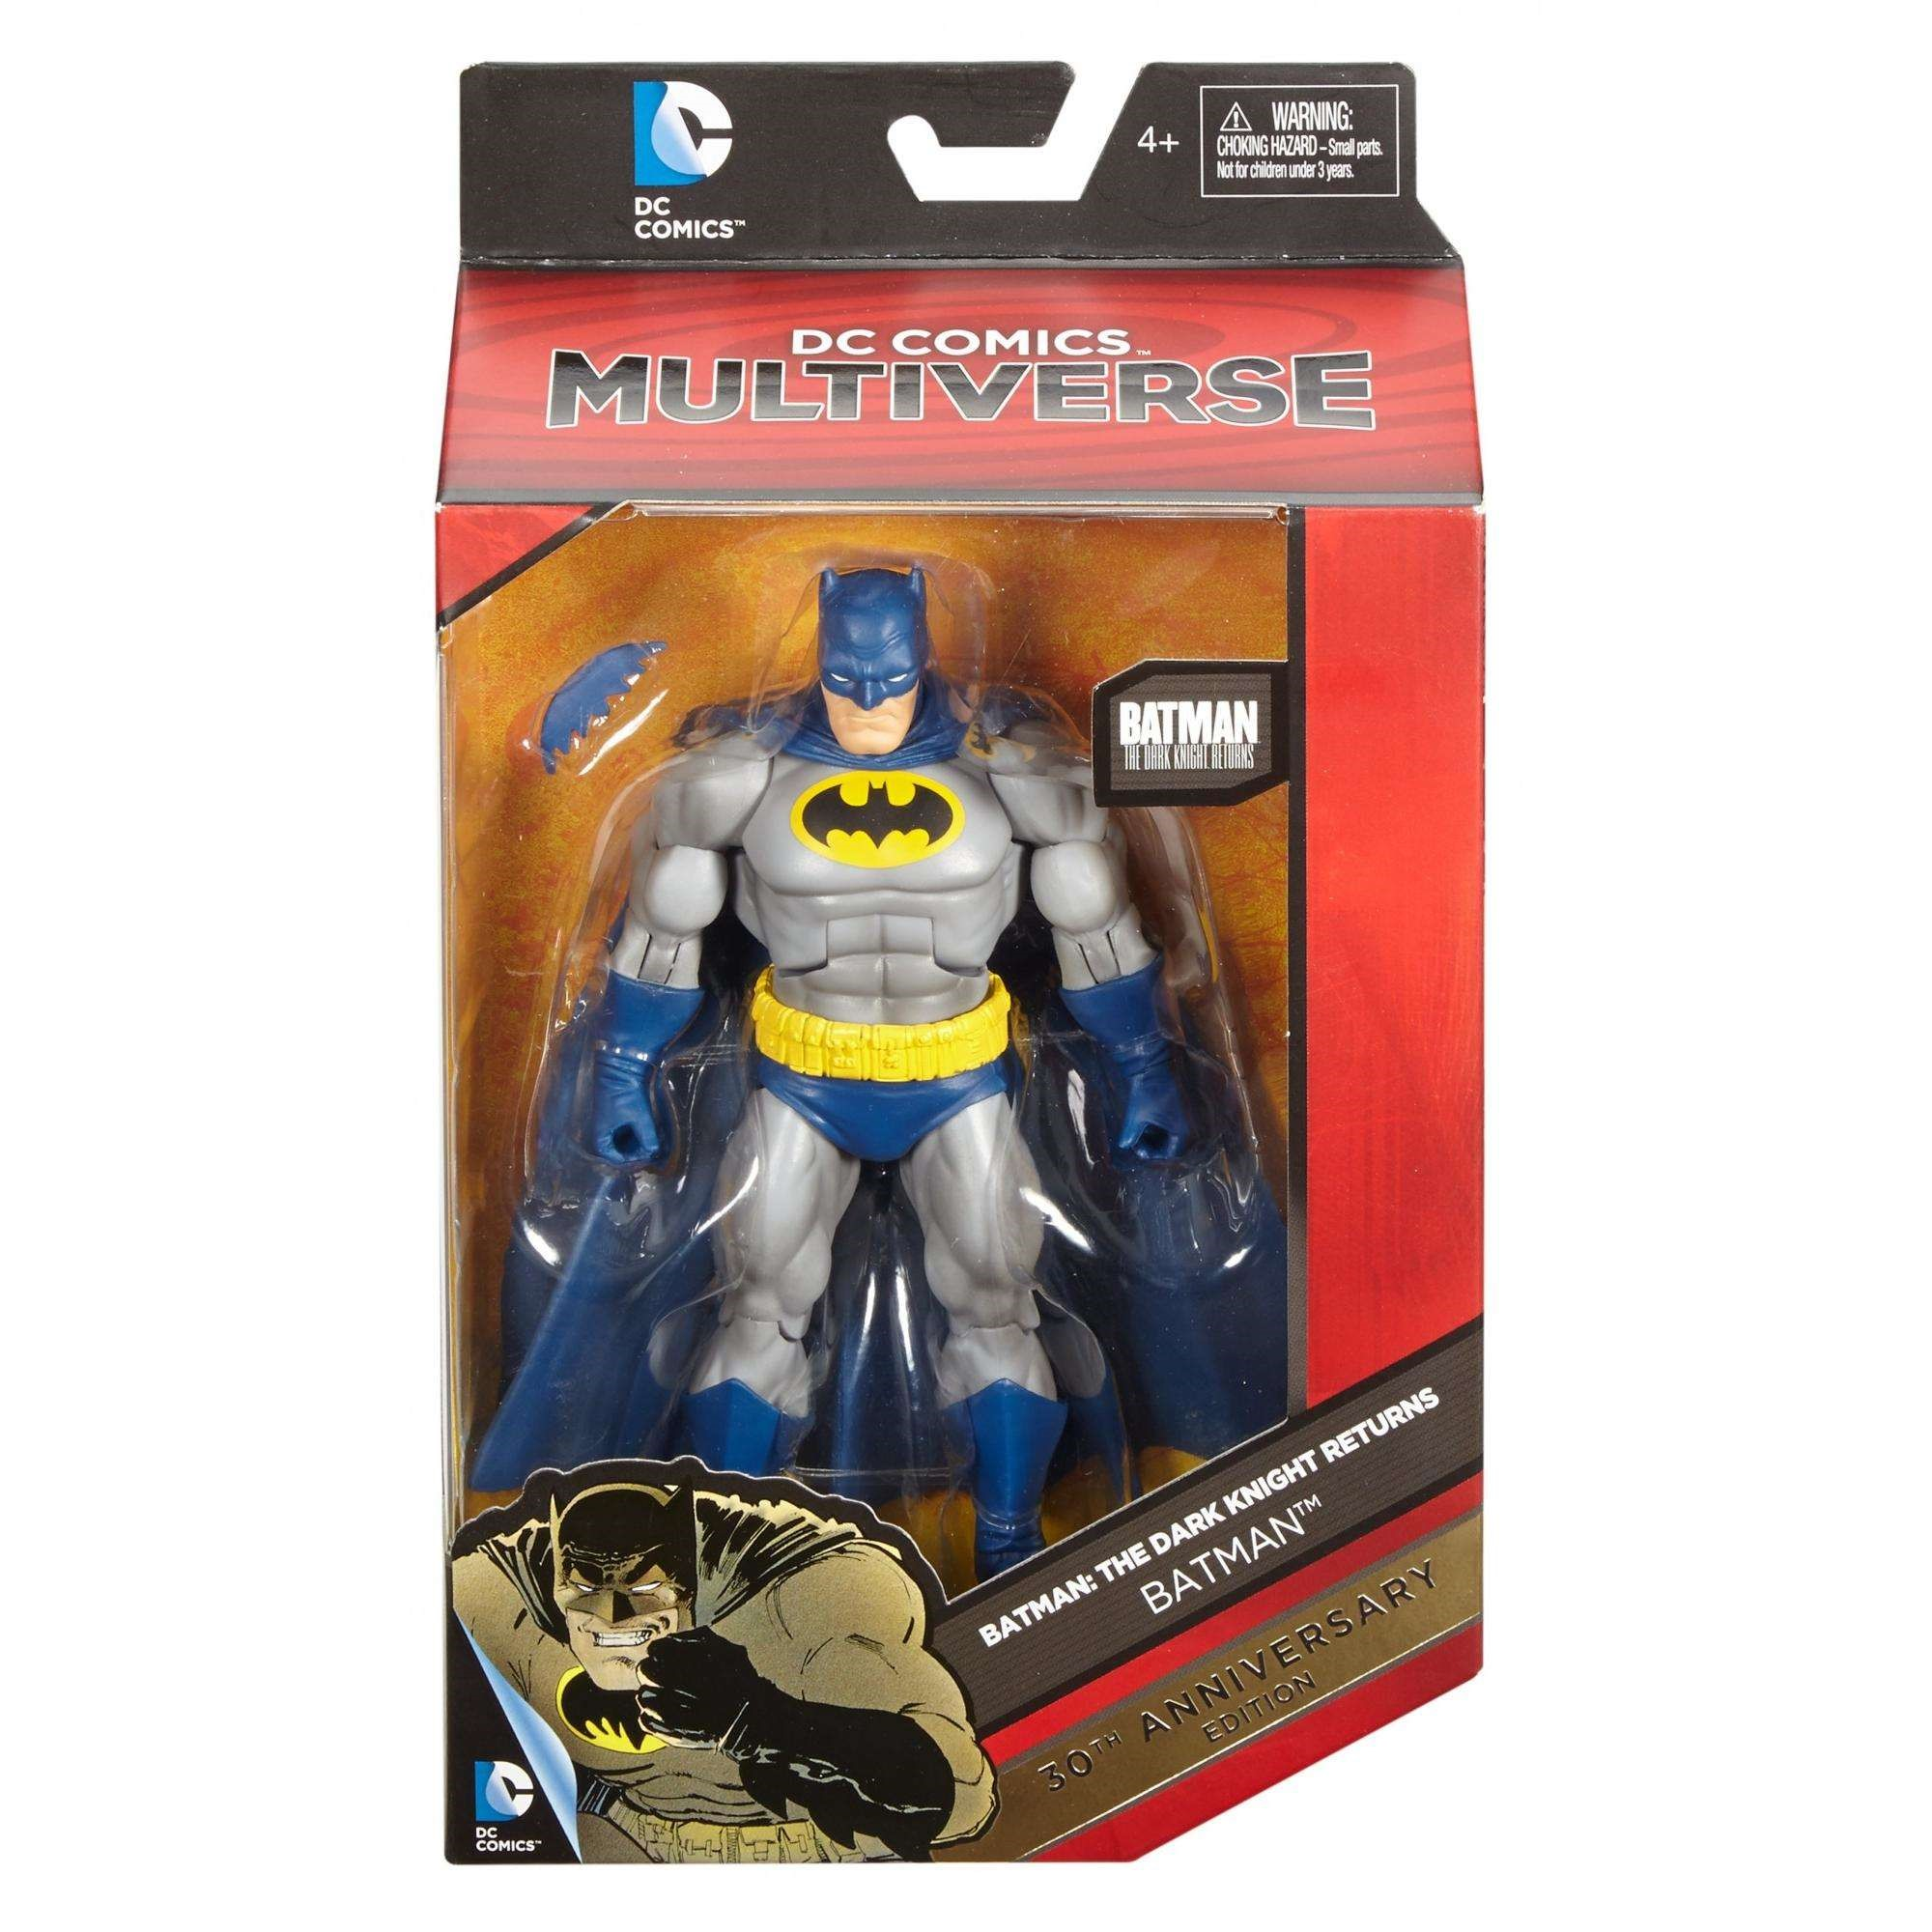 2015 DC Comics Multiverse Batman: The Dark Knight Returns BATMAN Sealed